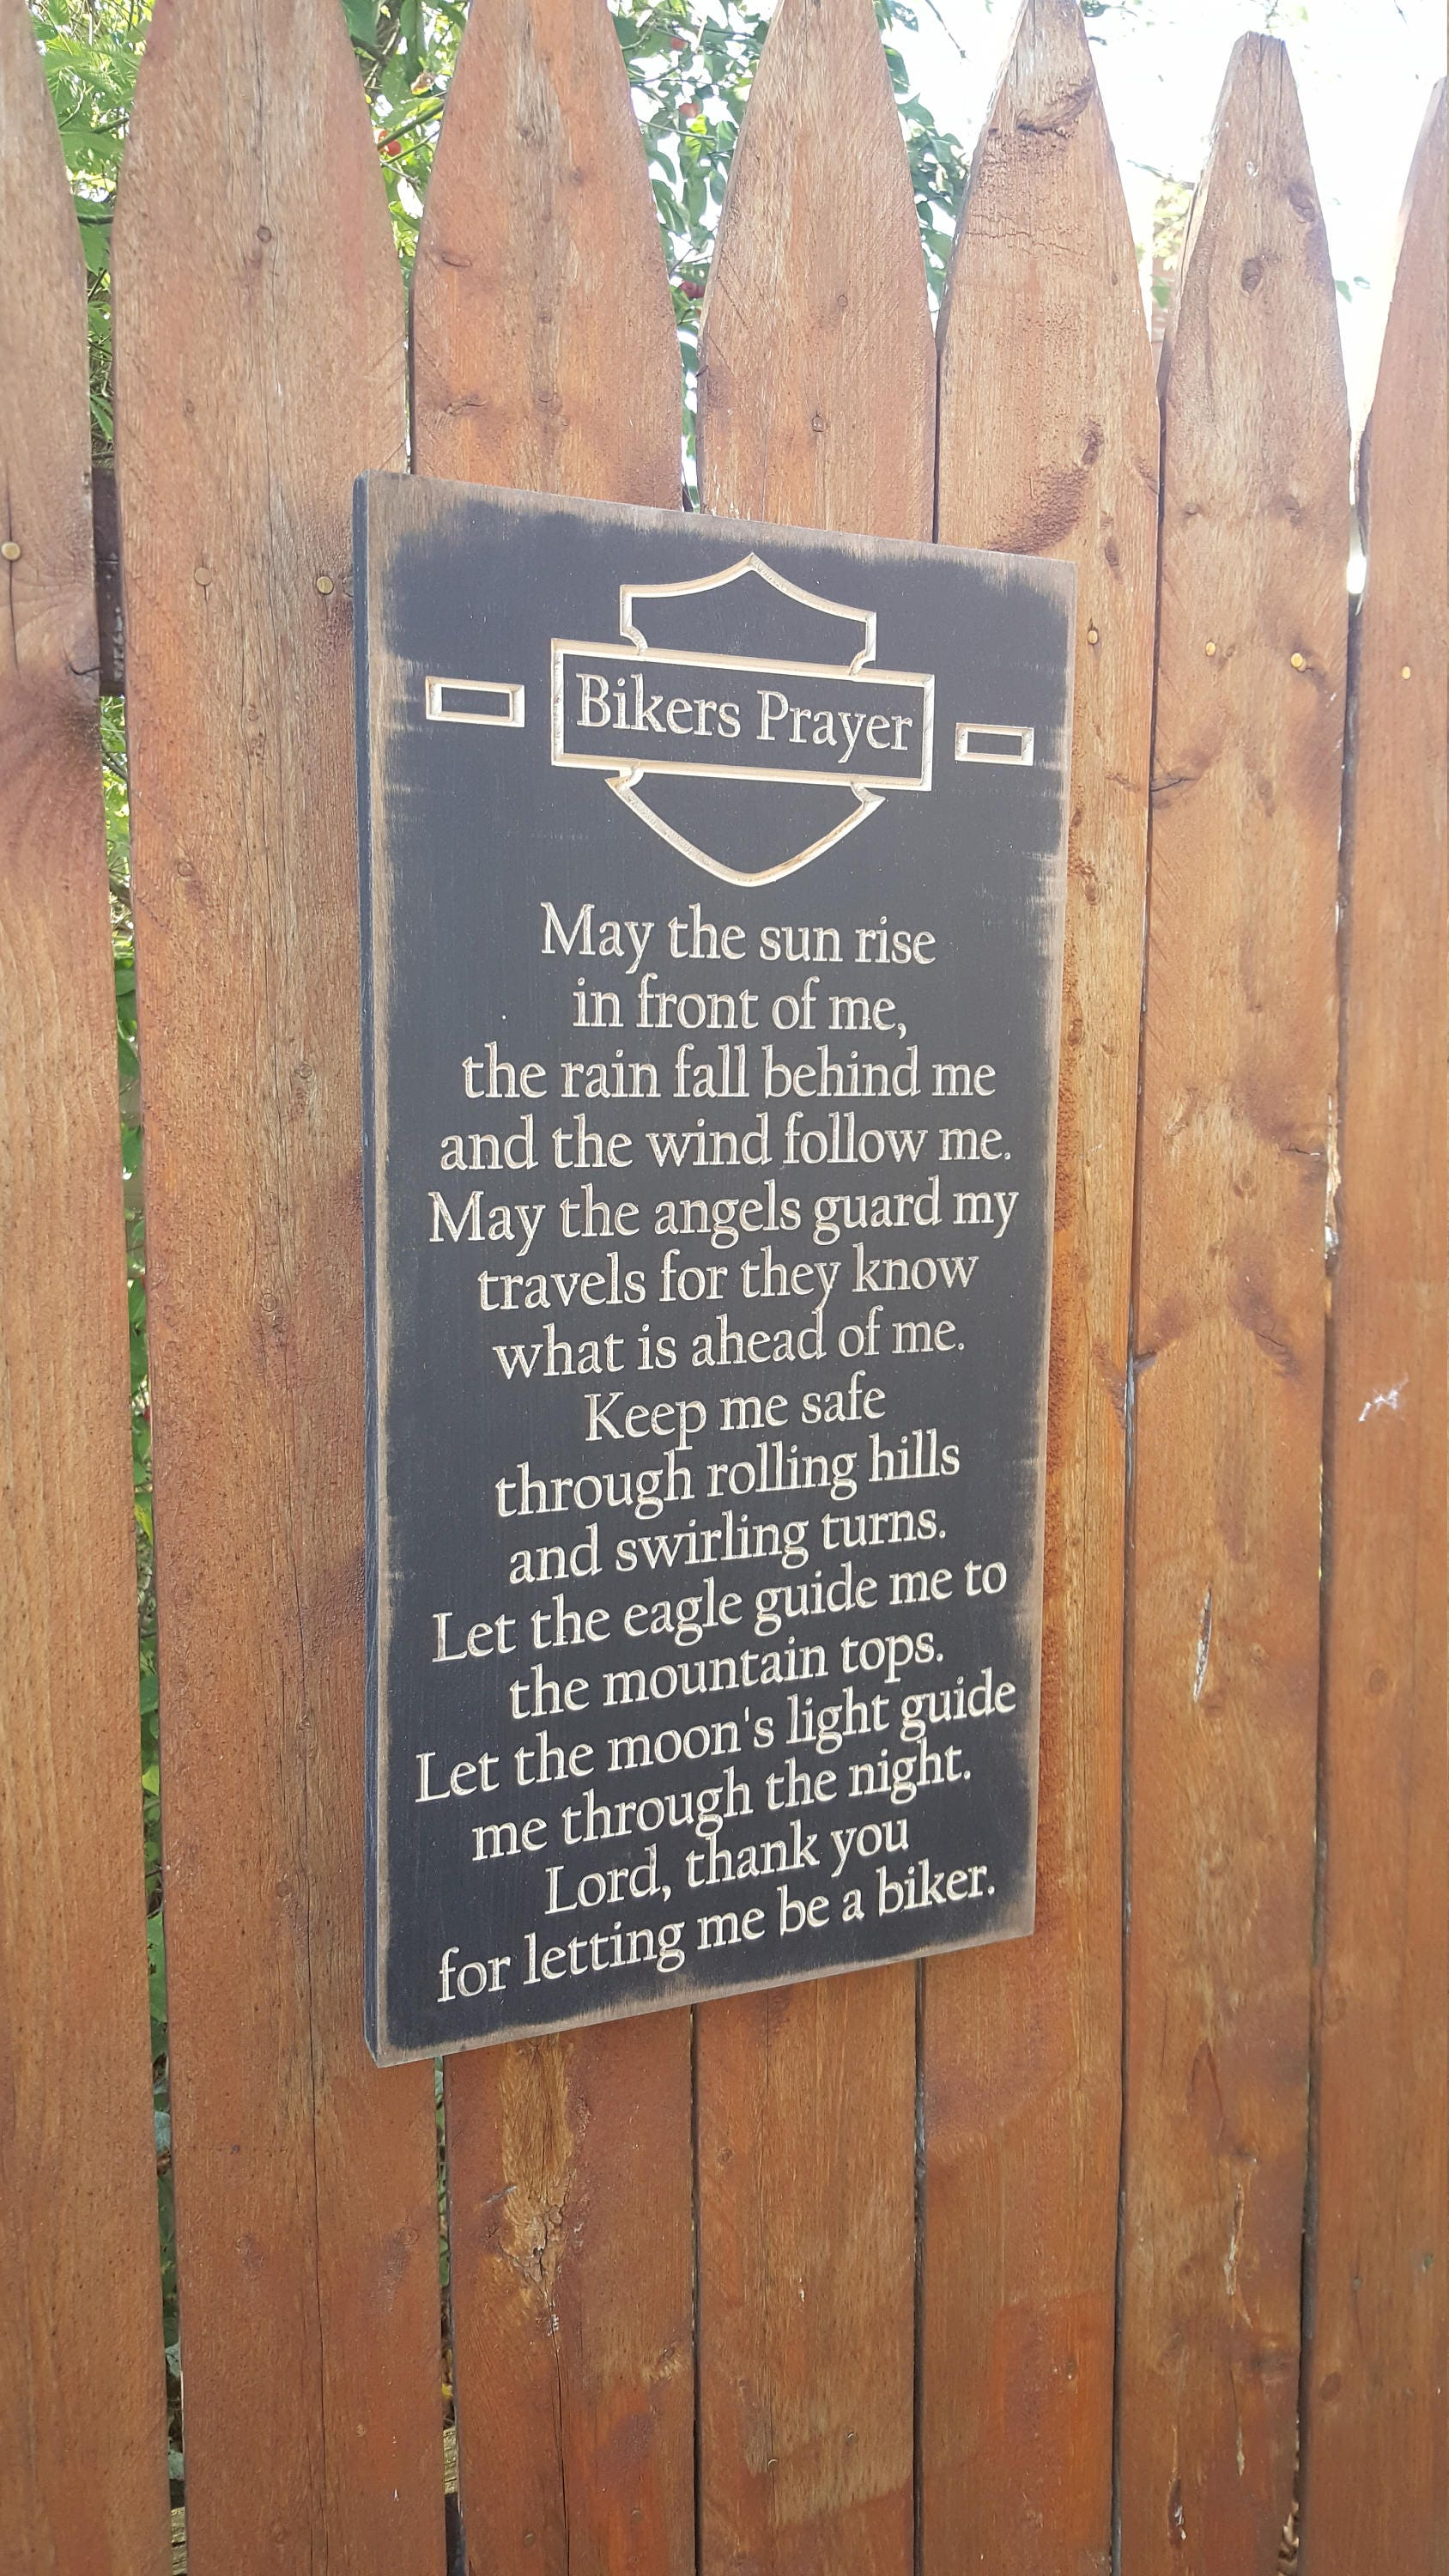 Custom Carved Wooden Sign - Bikers Prayer - May the Sun Rise In